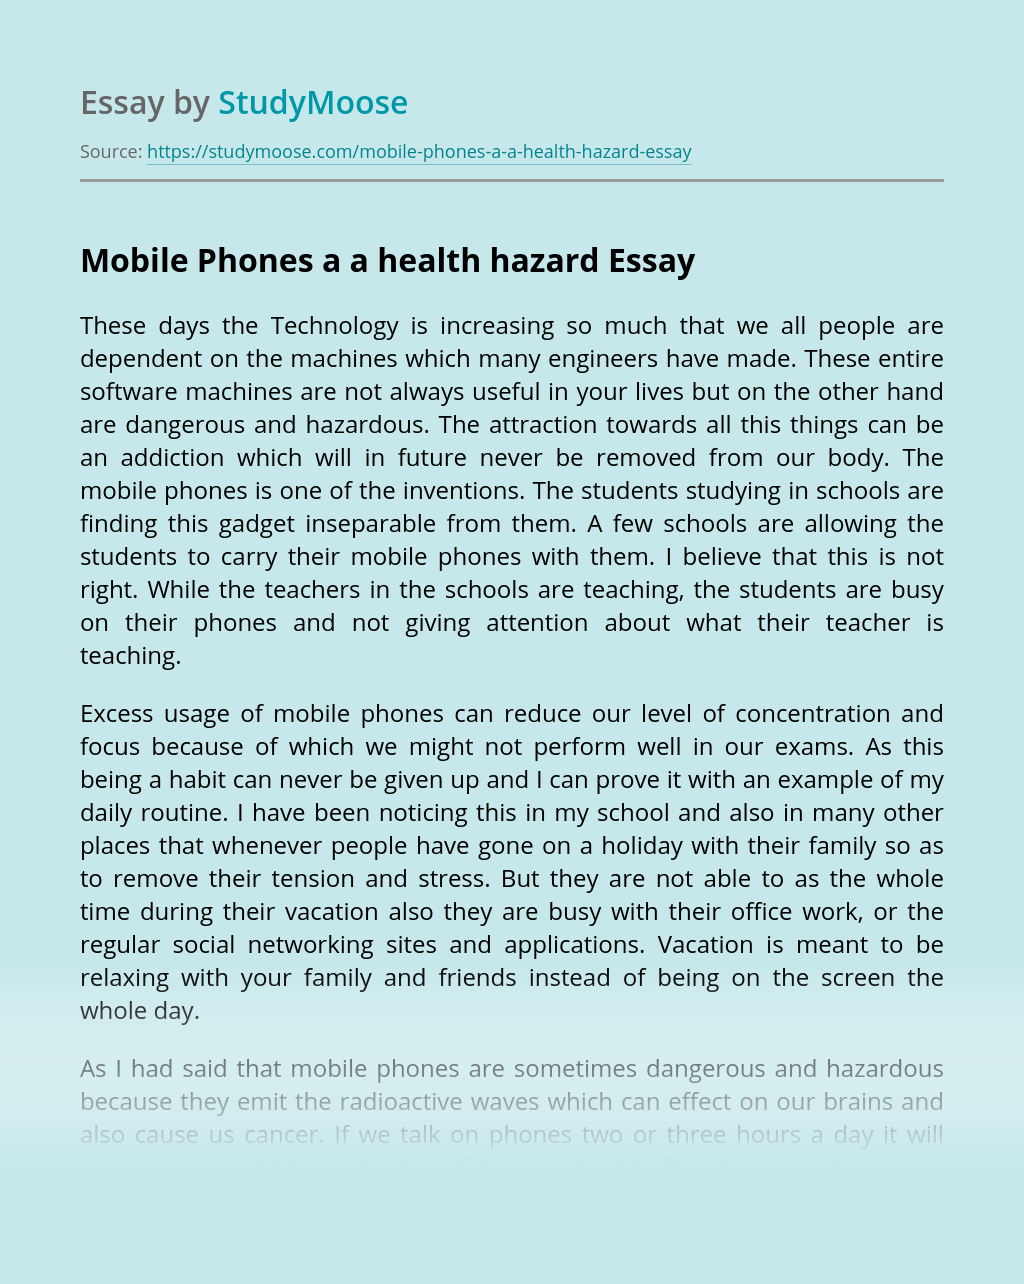 Mobile Phones a a health hazard